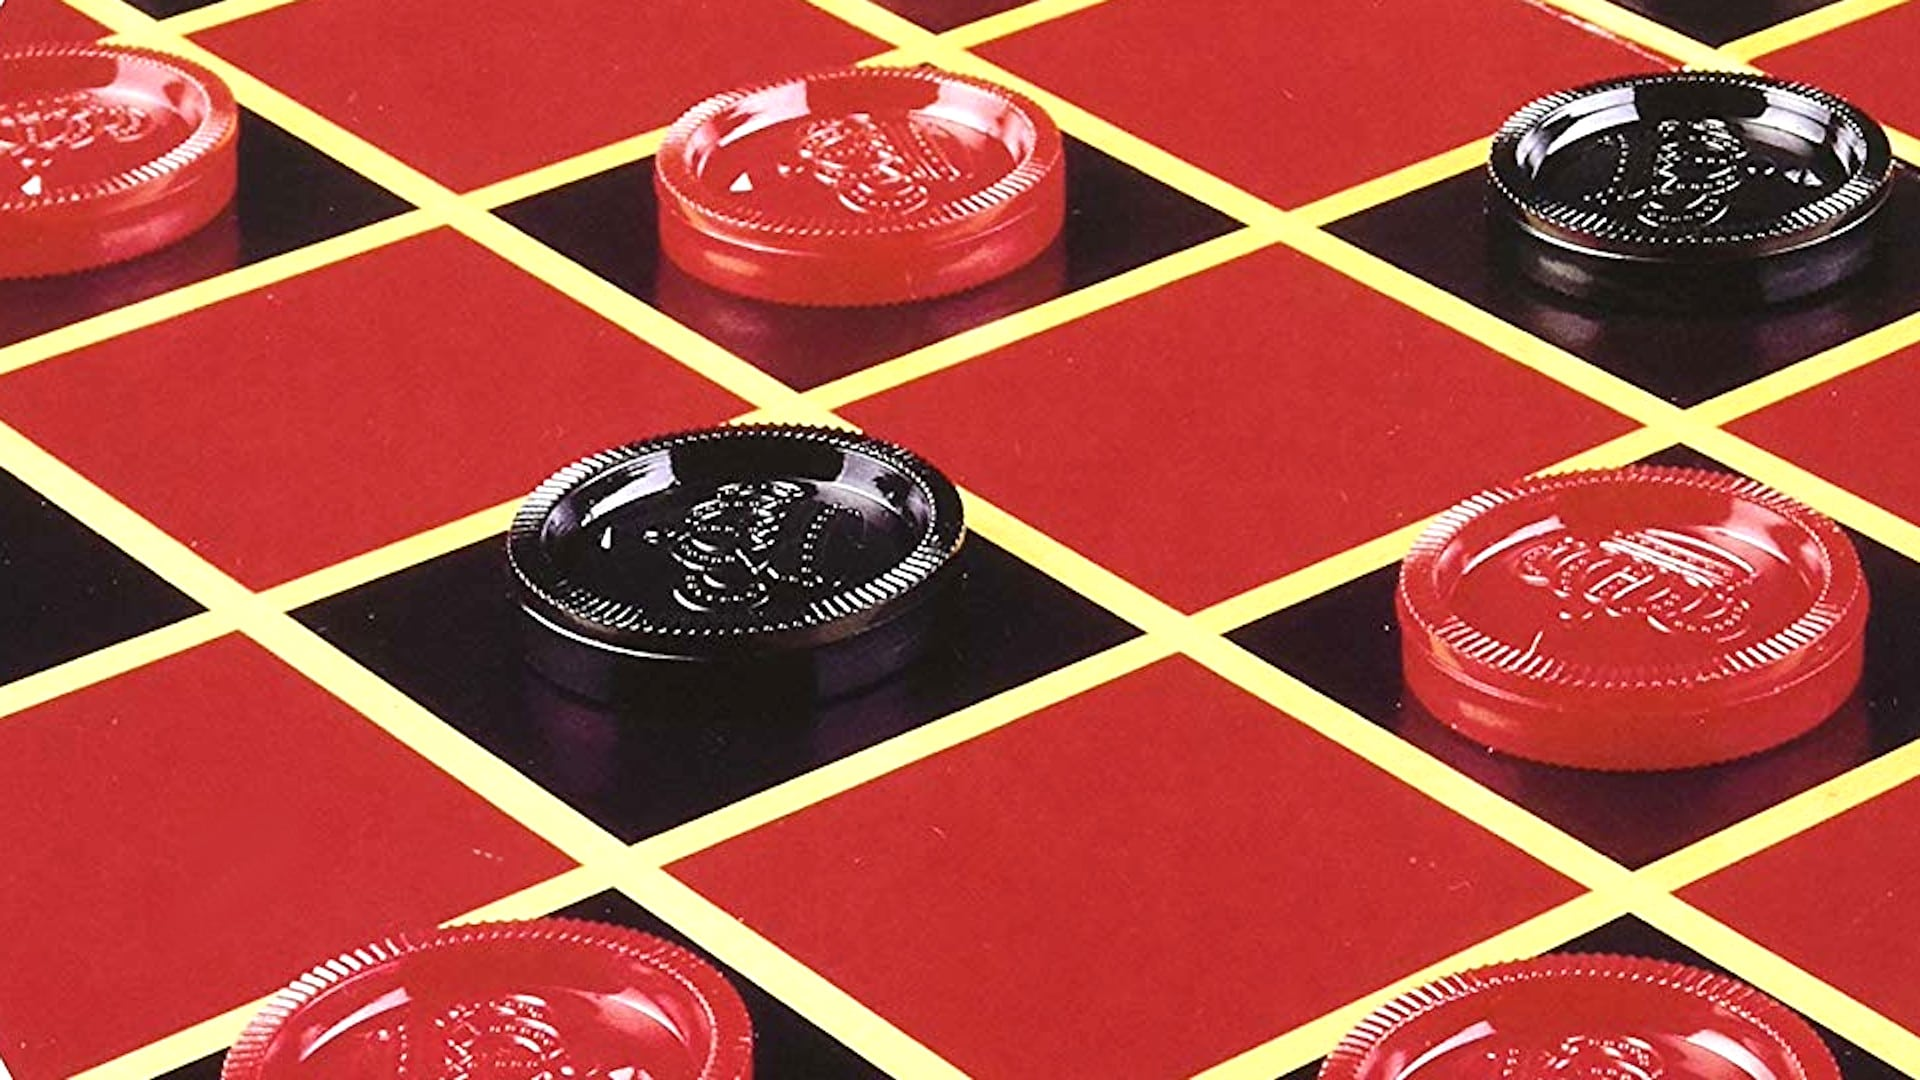 How to play Checkers?